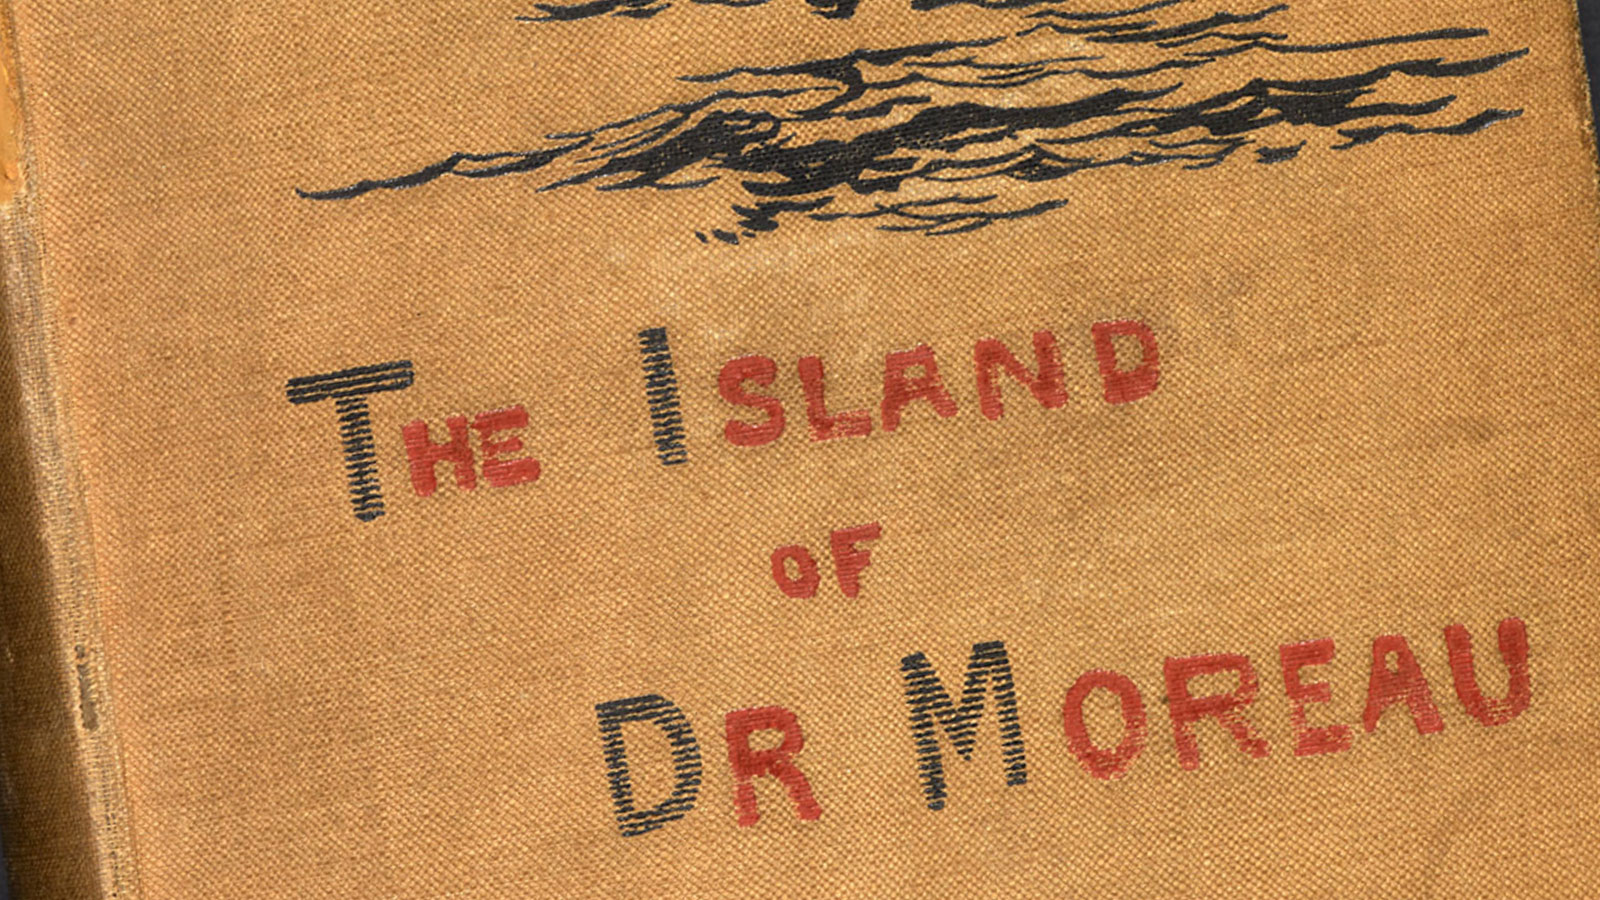 An introduction to The Island of Dr. Moreau: science, sensation and degeneration